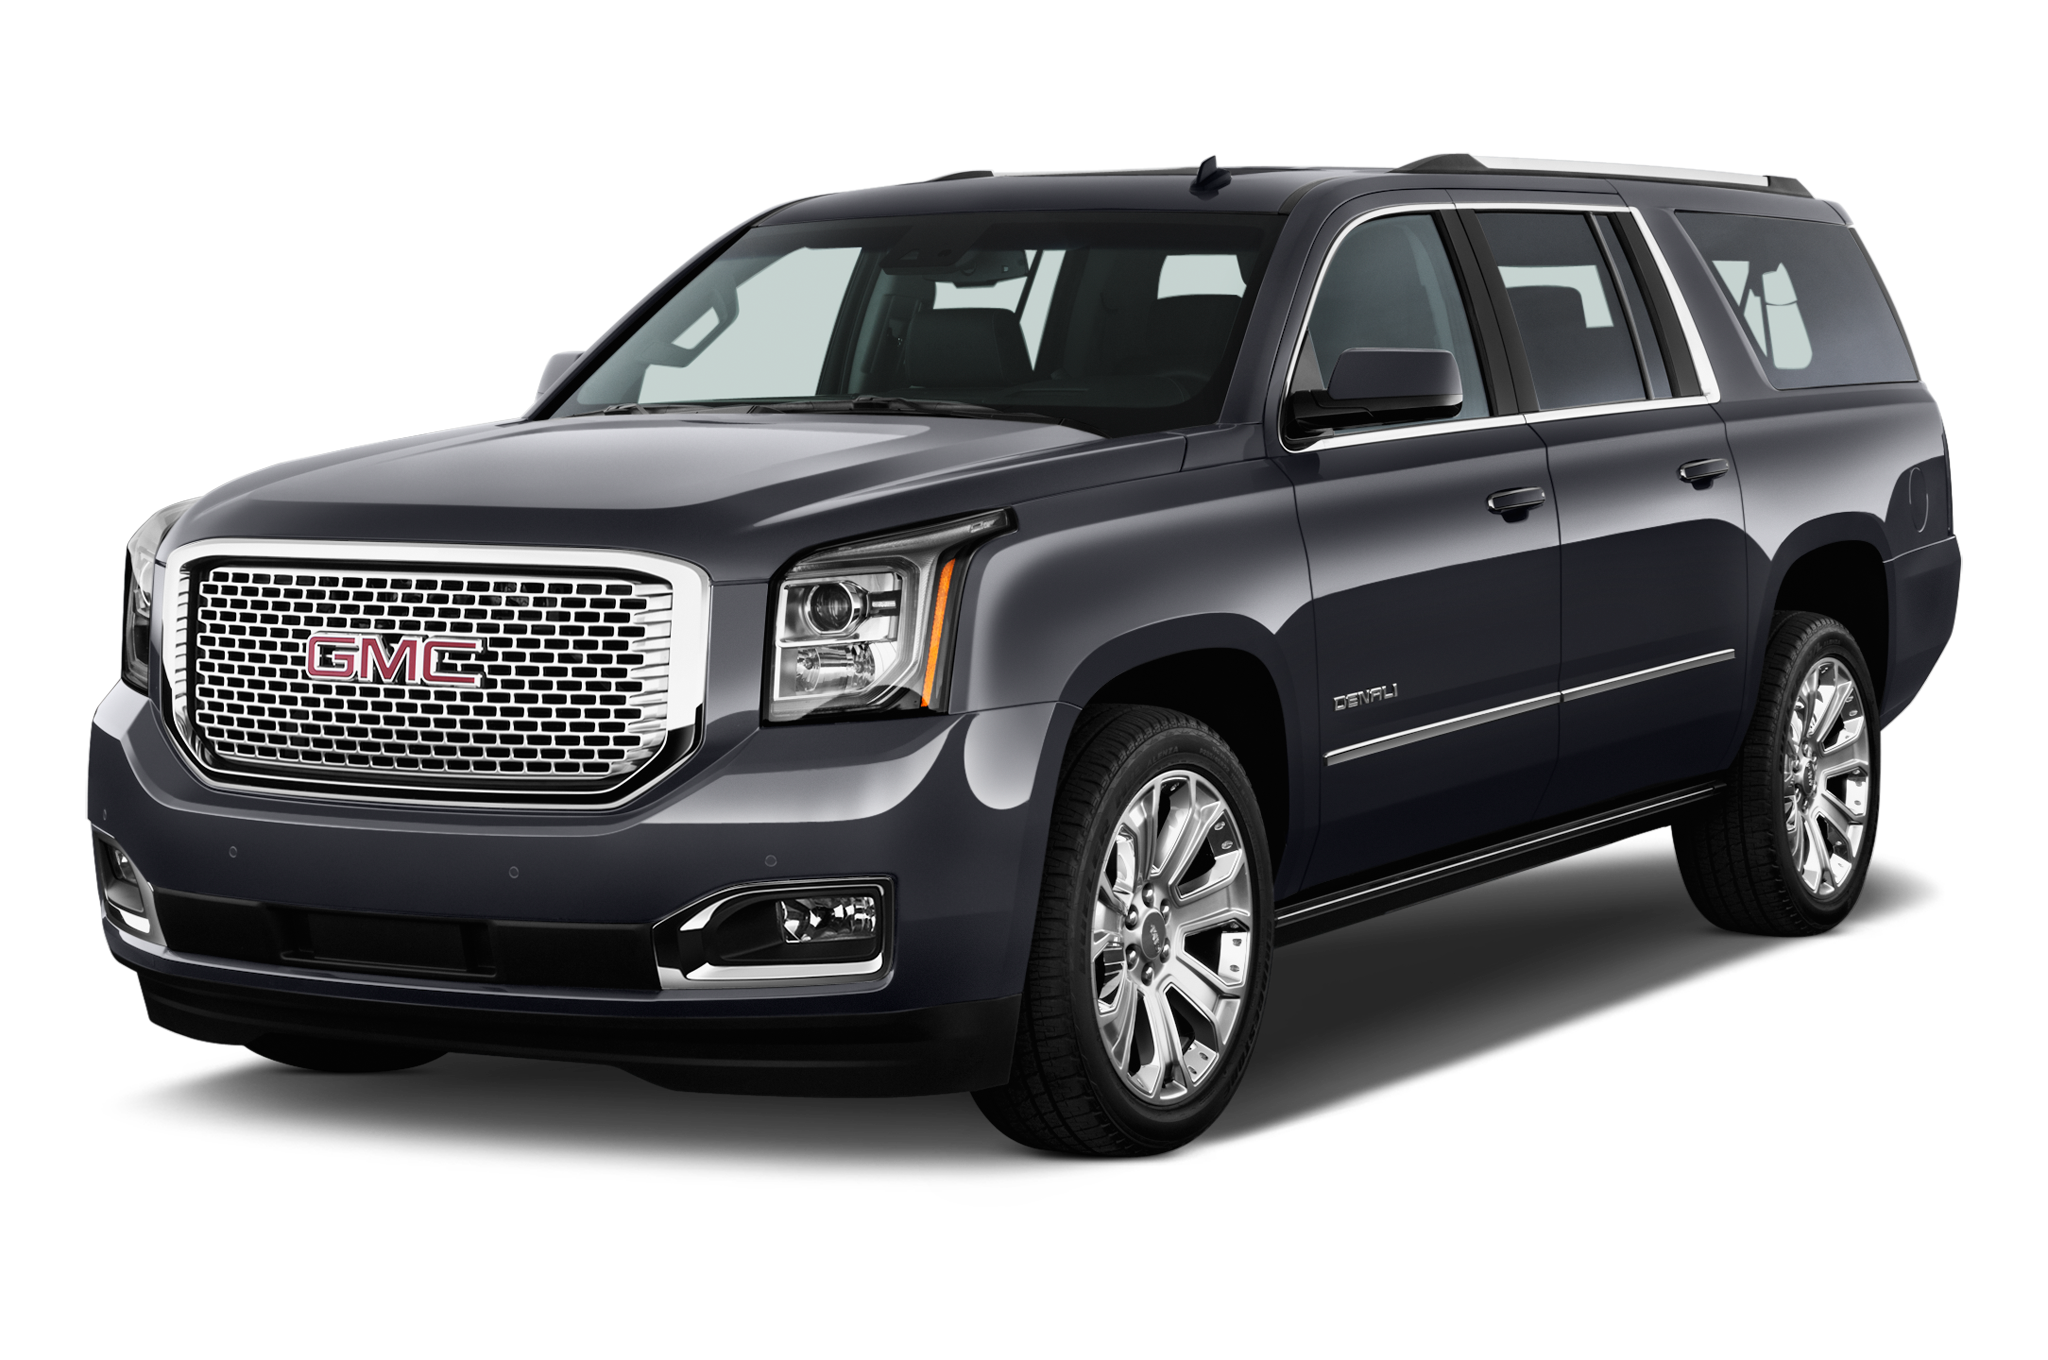 - Our fleet includes executive sedans, luxury SUVs, stretch limousines, mini coaches and full size motor coaches.Scottsdale Car Service, the limousine service of choice in Phoenix and the surrounding areas, is consistently recognized, by both regular as well as first time customers, as the Valley's best chauffeured ground transportation provider.